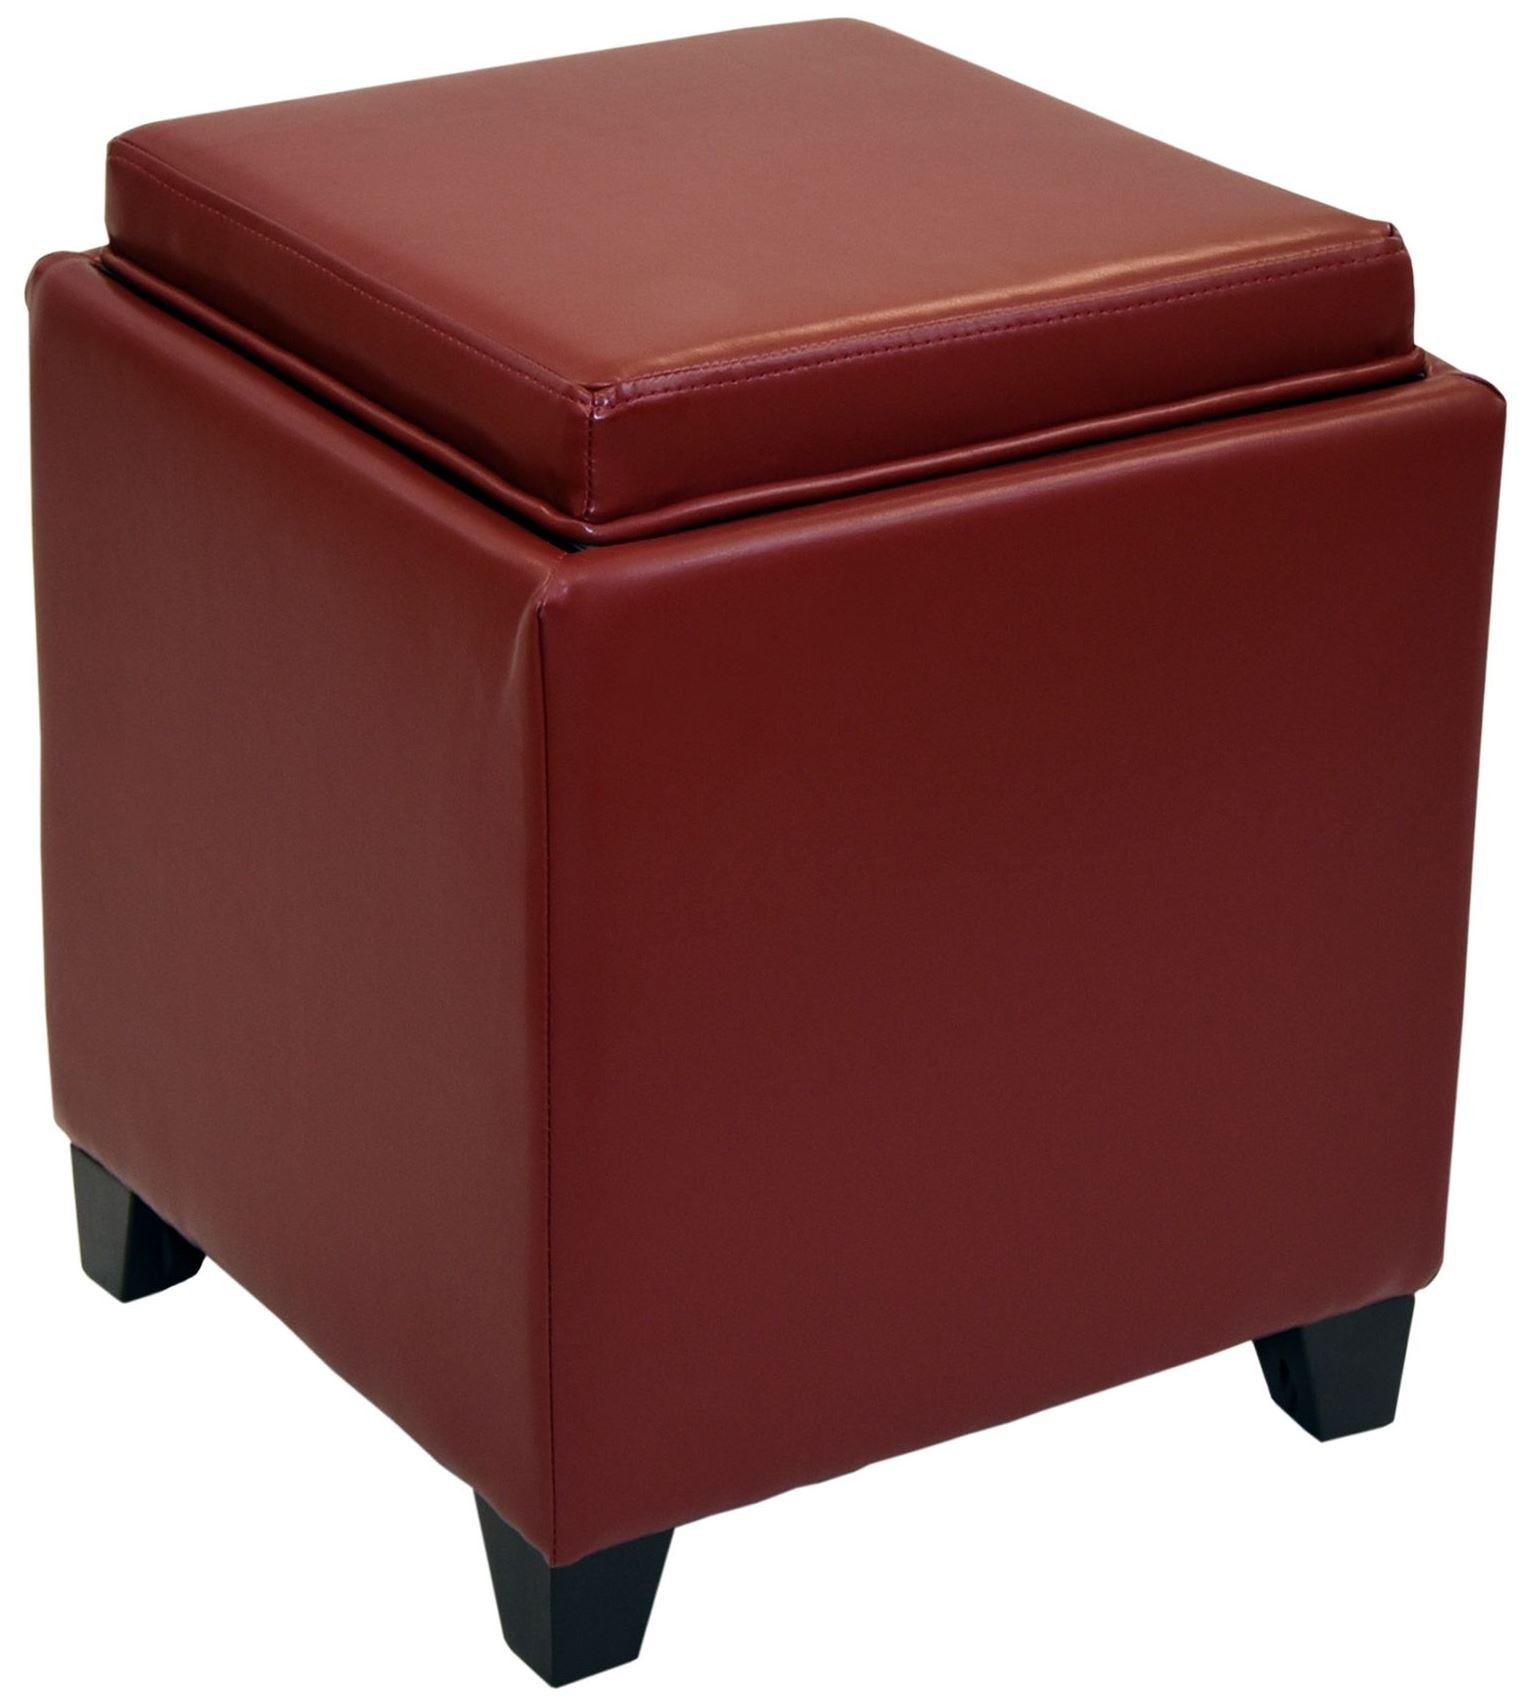 Rainbow Red Bonded Leather Storage Ottoman With Tray From